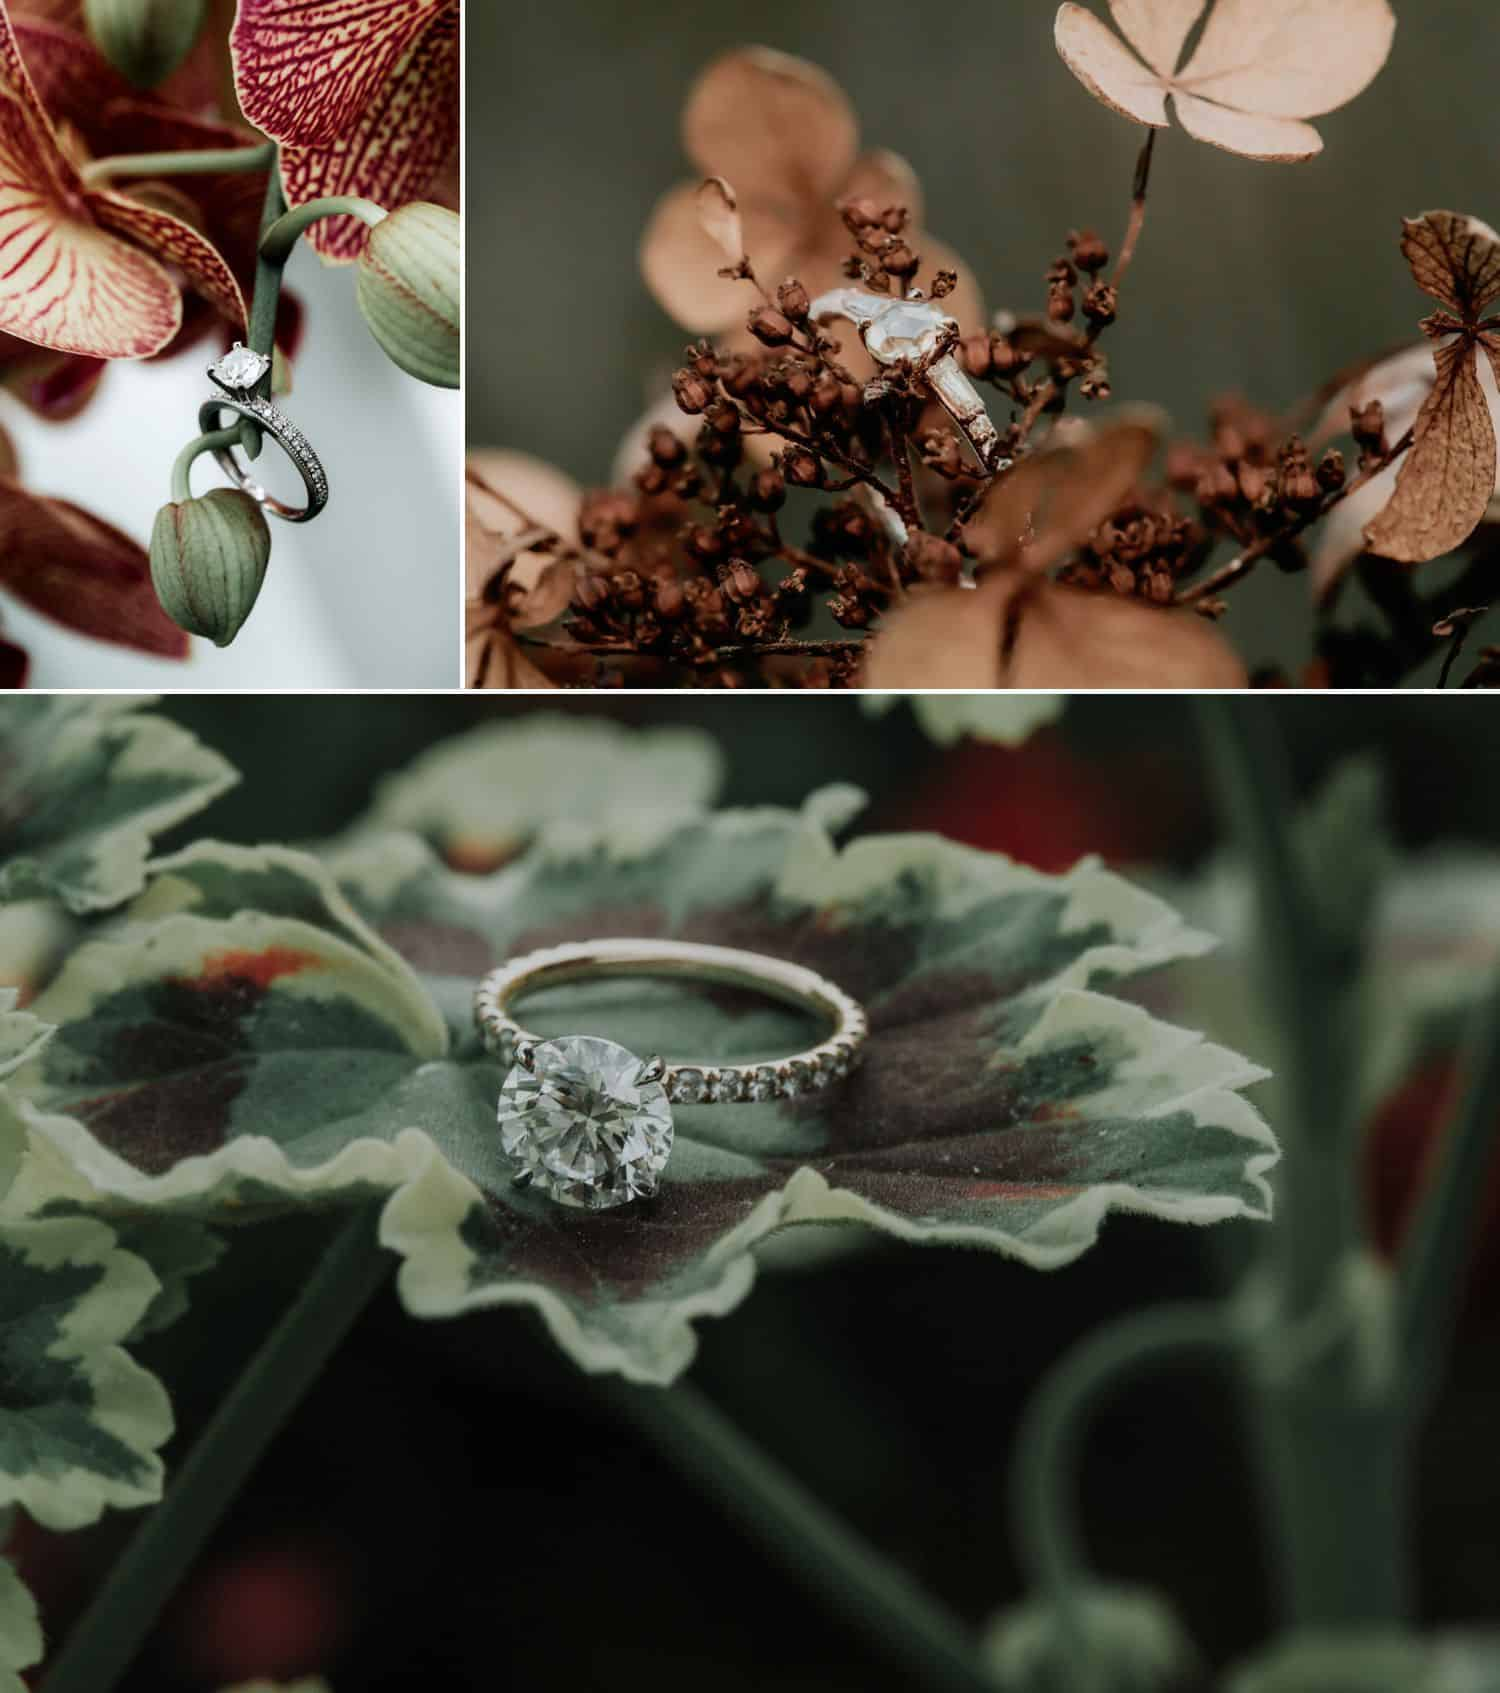 Get inspired by 35 stunning wedding ring photographs, then learn the ins and outs of making them with our how-to tips!